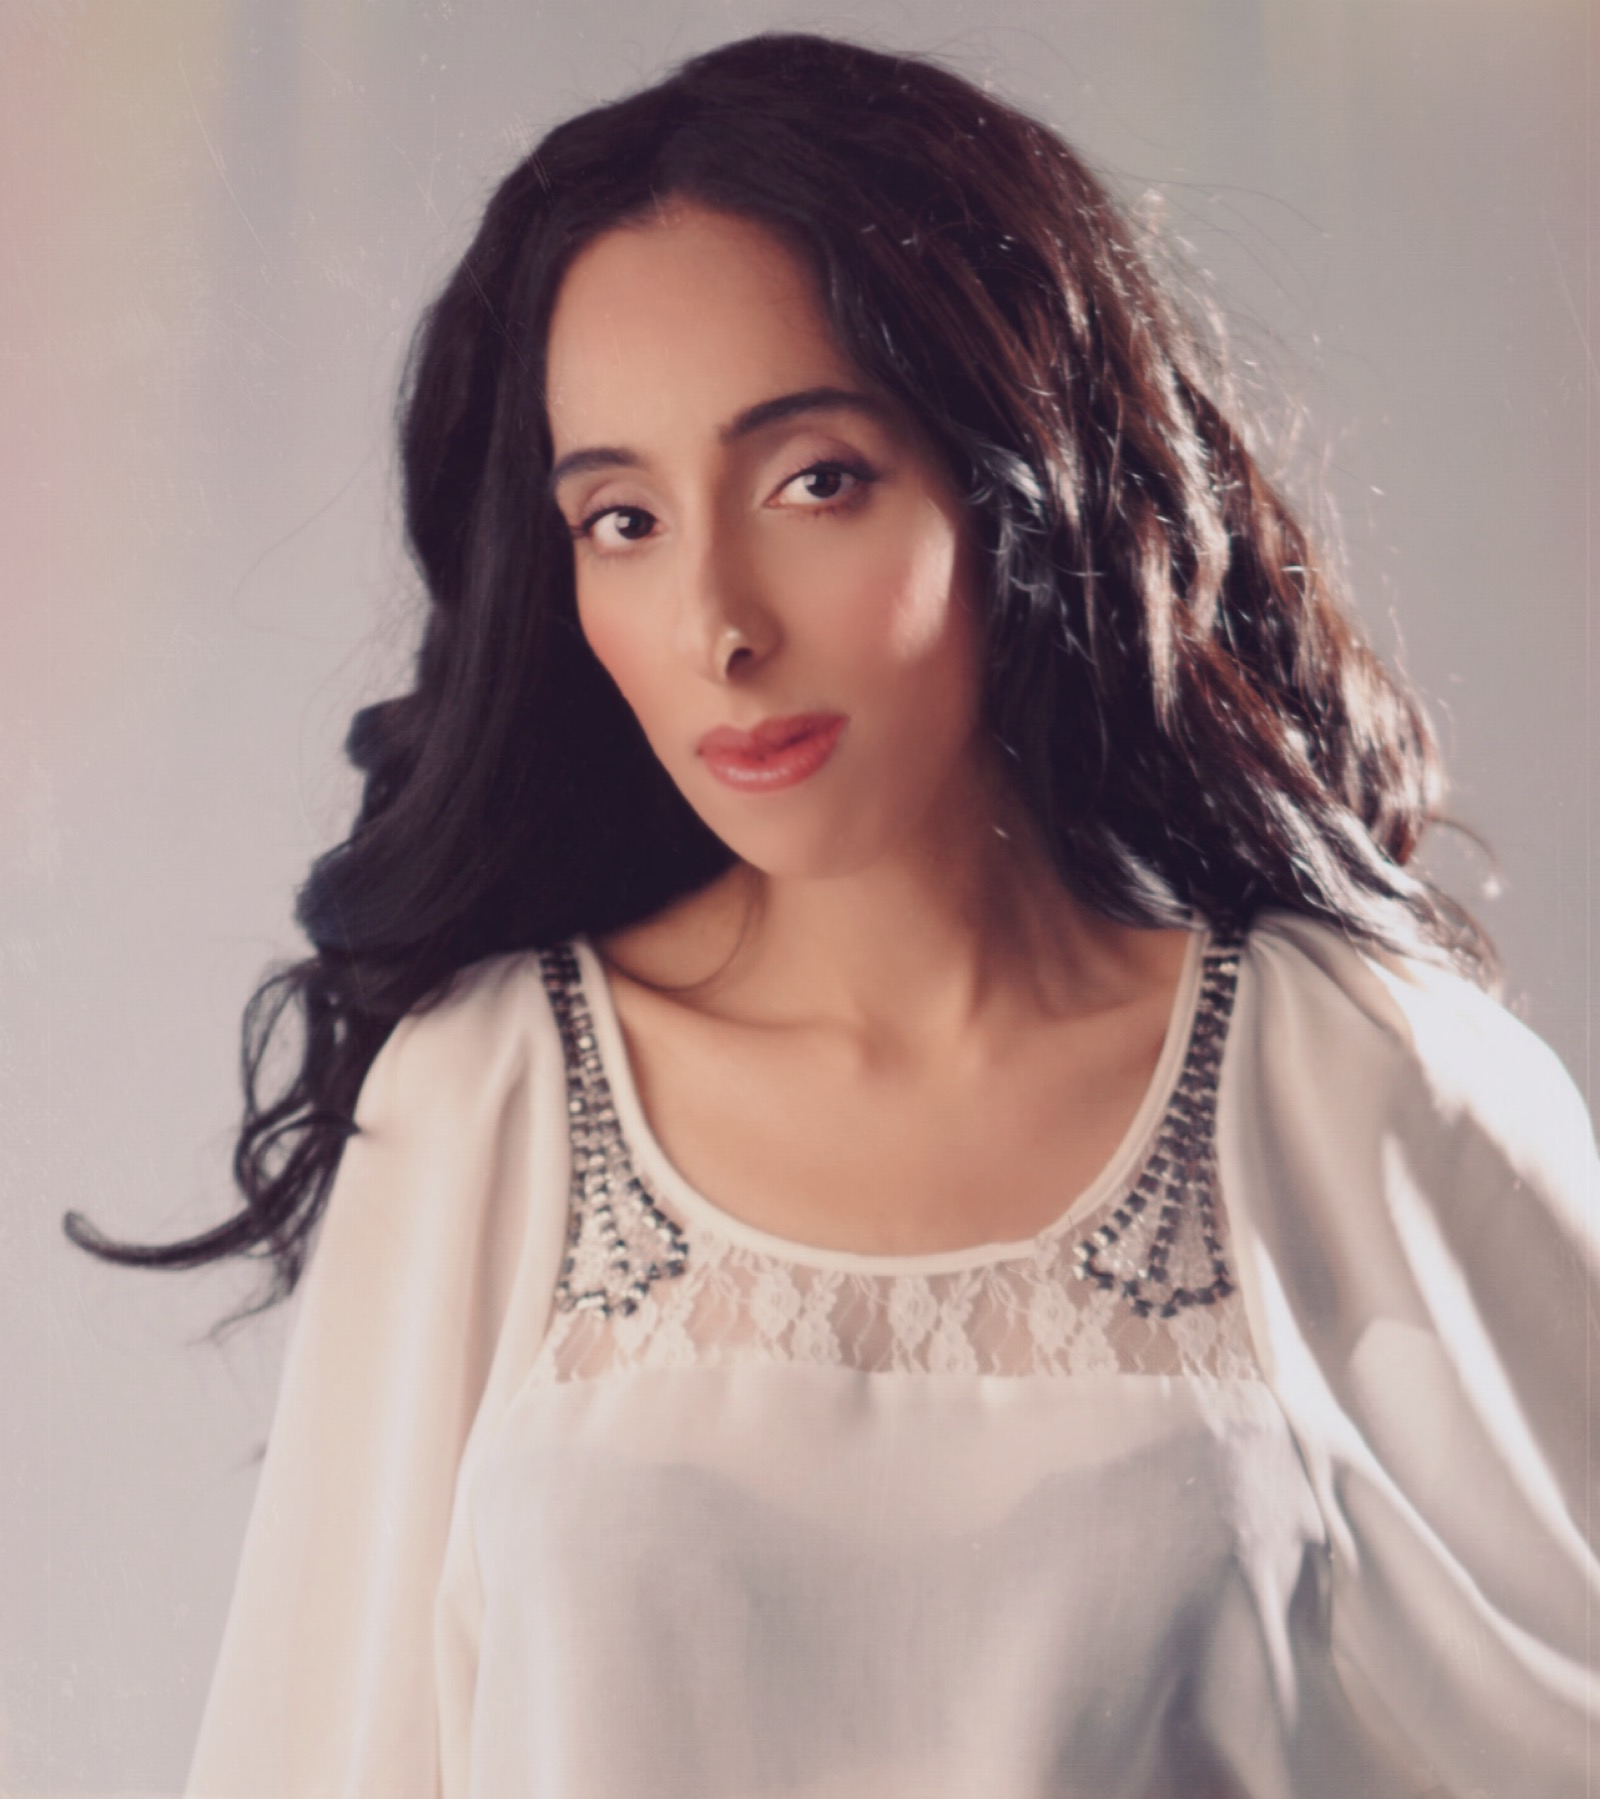 Arzutraa, the first Indian Singer to launch the purest organic skincare brand, Arzutraa Beauty UK